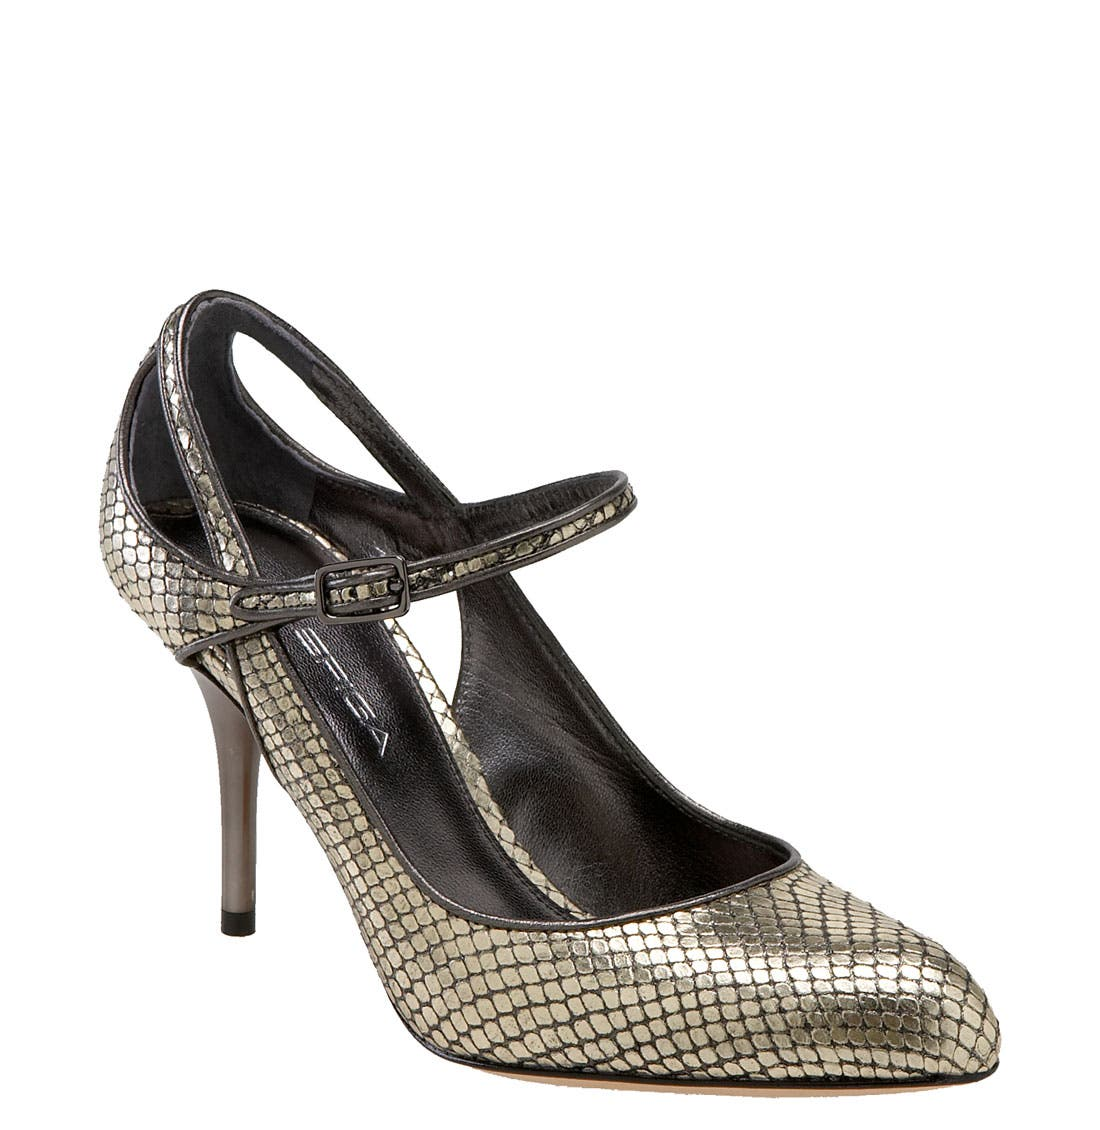 Alternate Image 1 Selected - Via Spiga 'Opal' Pump